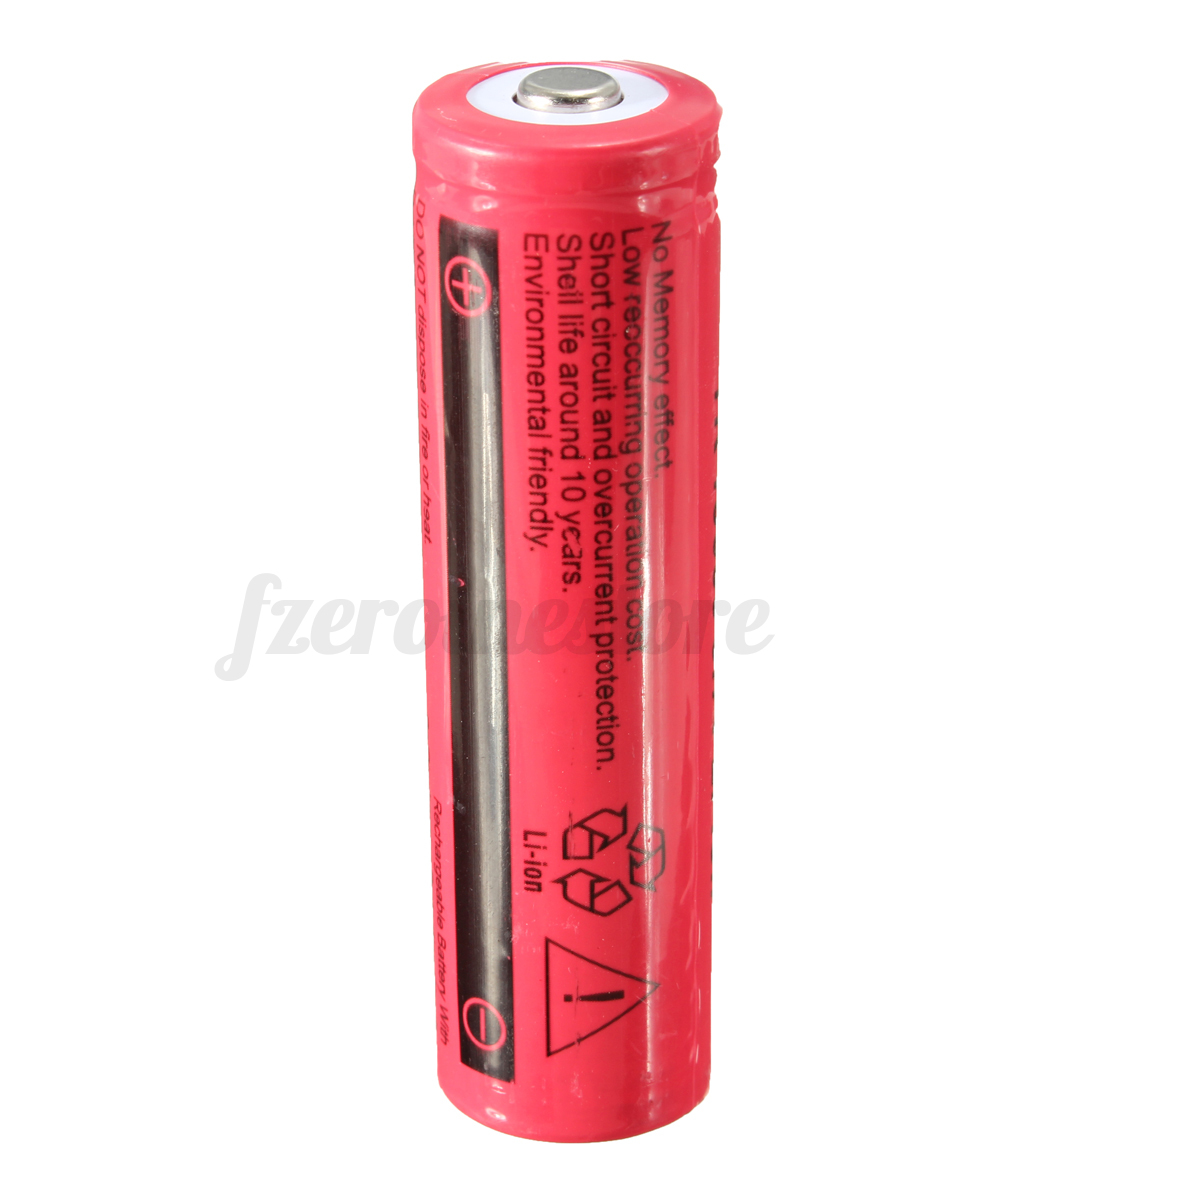 What Is The Correct Temperature For A Battery Room